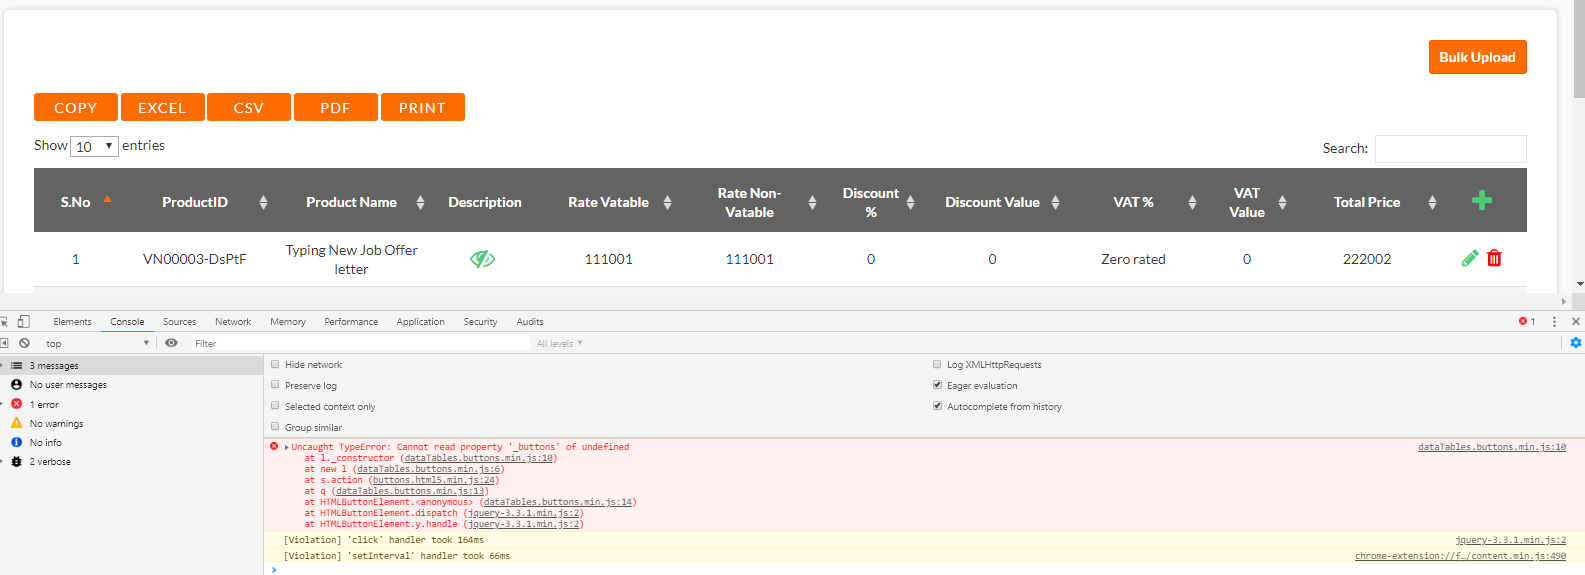 Cannot read property '_buttons' of undefined · Issue #583